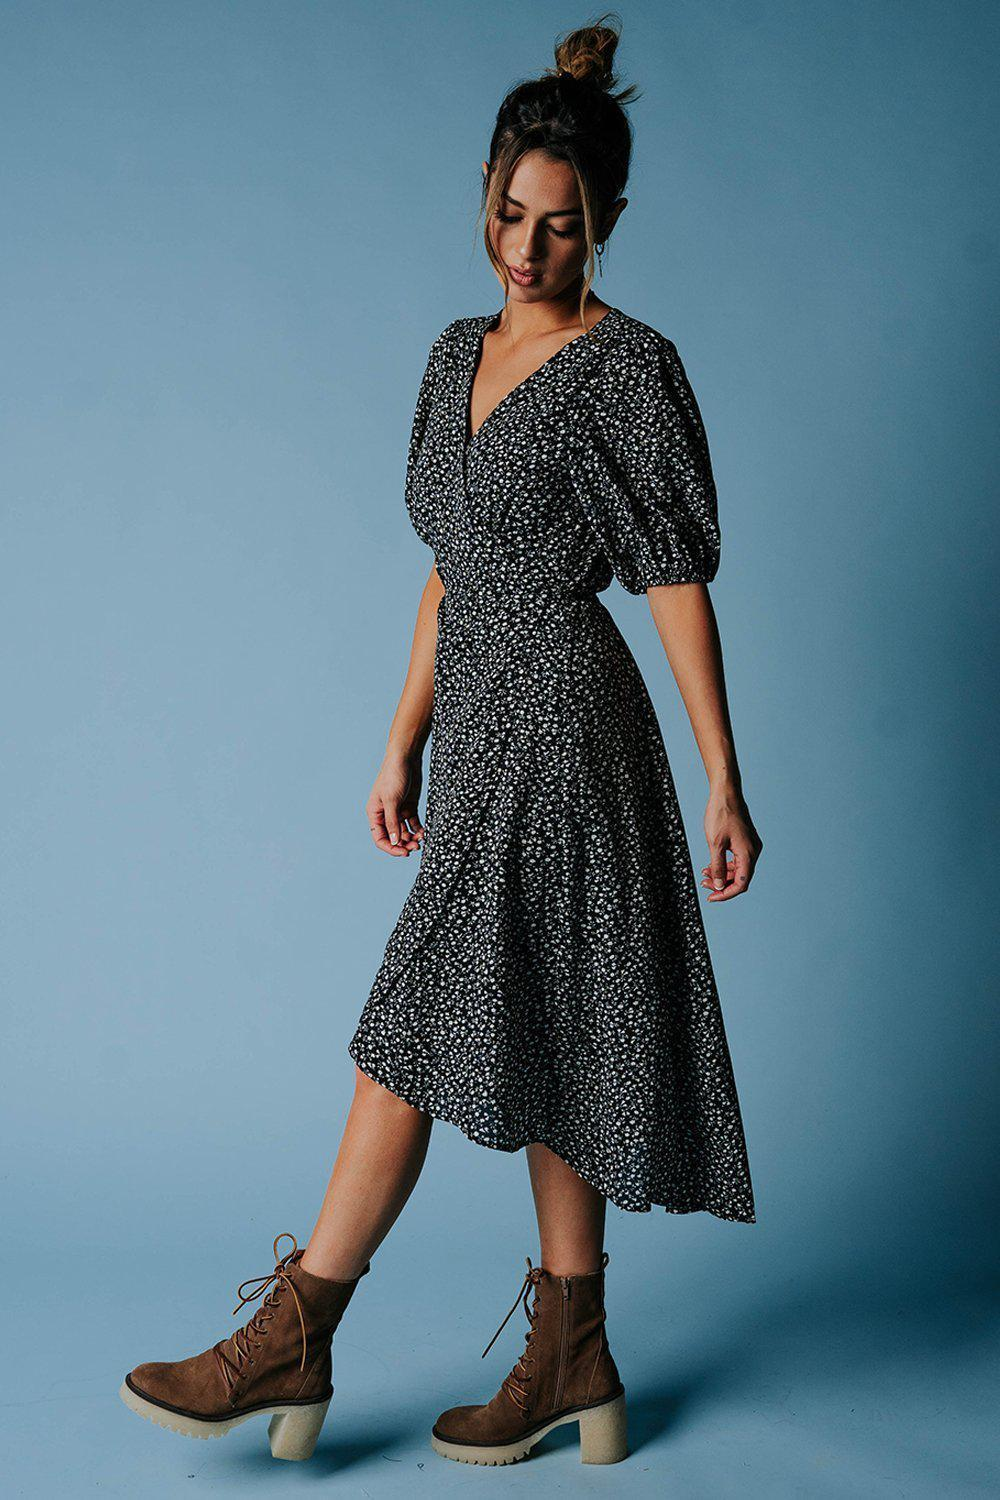 best_seller, Slow Dance Floral Midi Dress - FINAL SALE, Dress, women's clothing, dresses, skirts, coats, jackets, shoes, boots, tops, tee shirts, jeans, free people, levi's, rollas, jumpsuits, bottoms, tops, sweaters, pullovers, pants, shorts, sweats,.